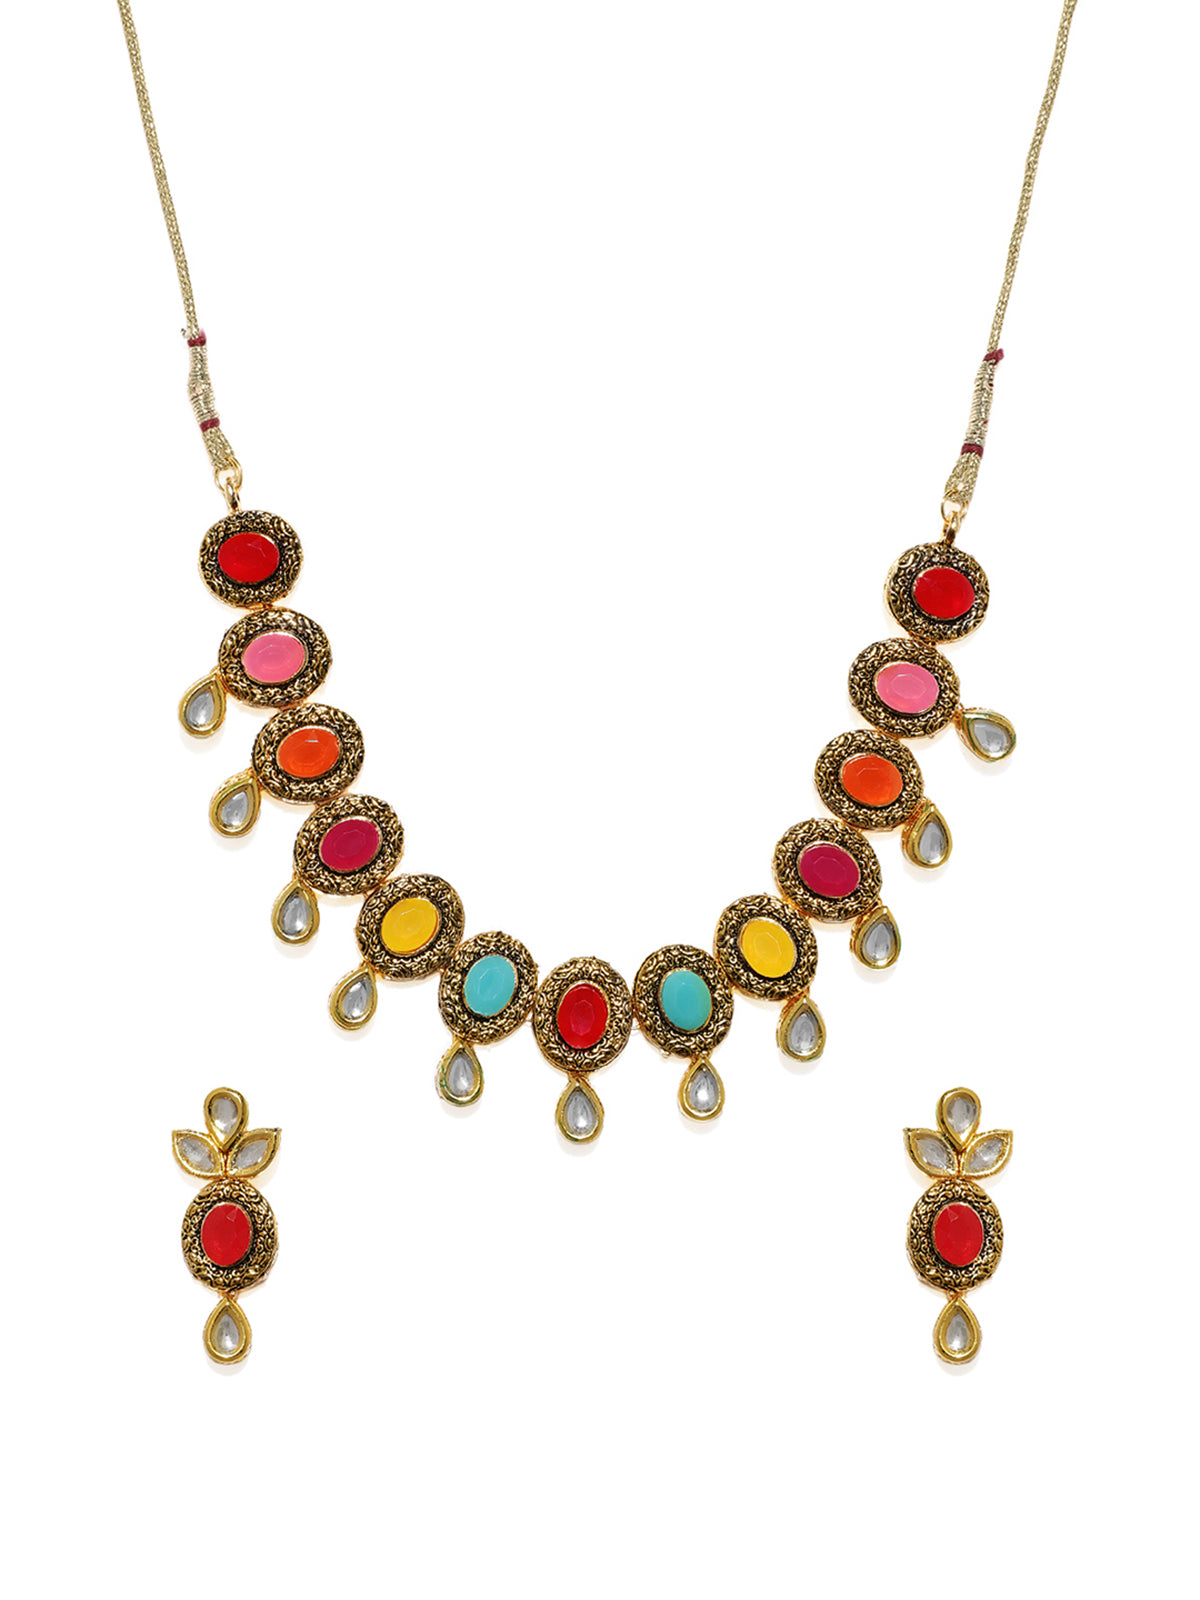 Zaveri Pearls Antique Gold Tone Multicolor Stones And Kundan Necklace Set-ZAVERI PEARLS1-Necklace Set